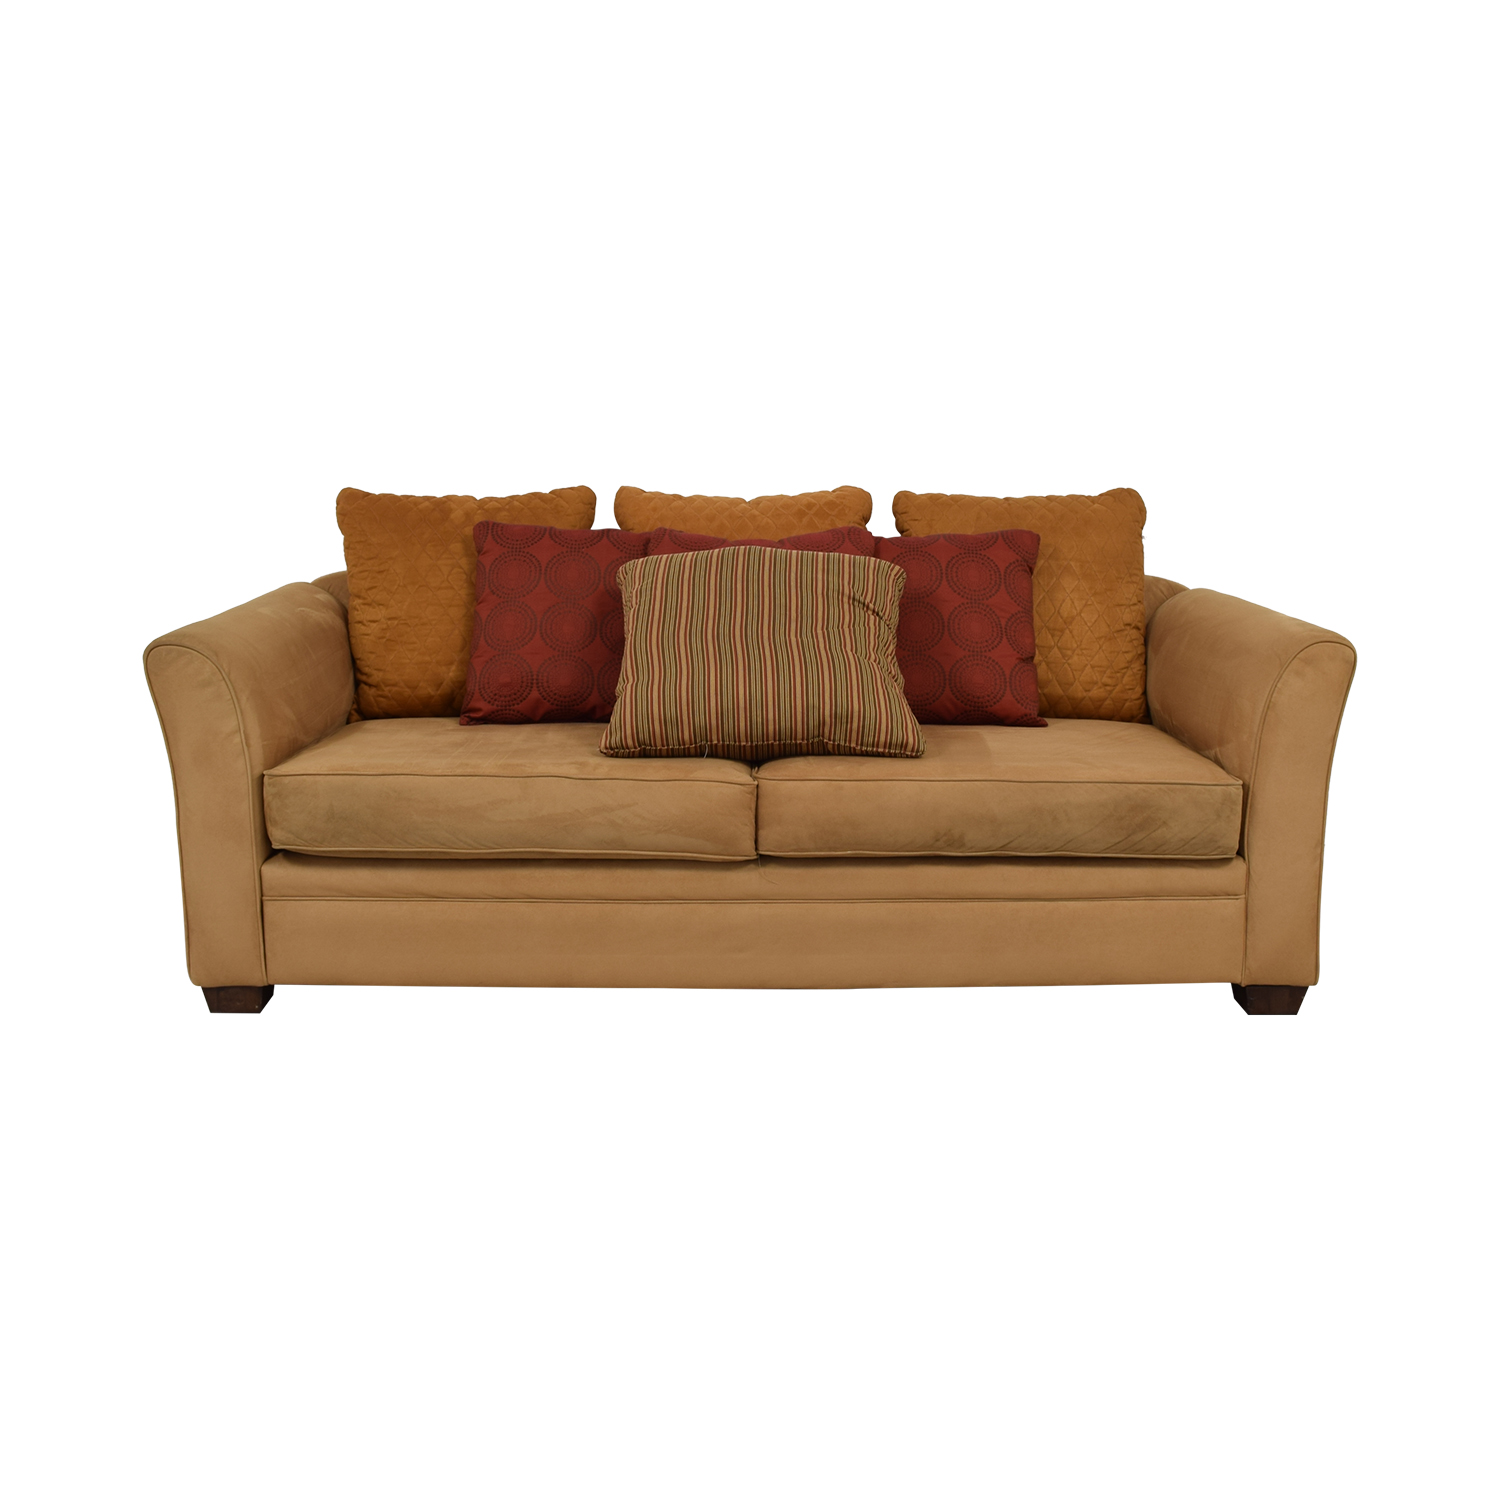 shop Raymour & Flanigan Raymour & Flanigan Camel Microsuede Two-Cushion Couch online